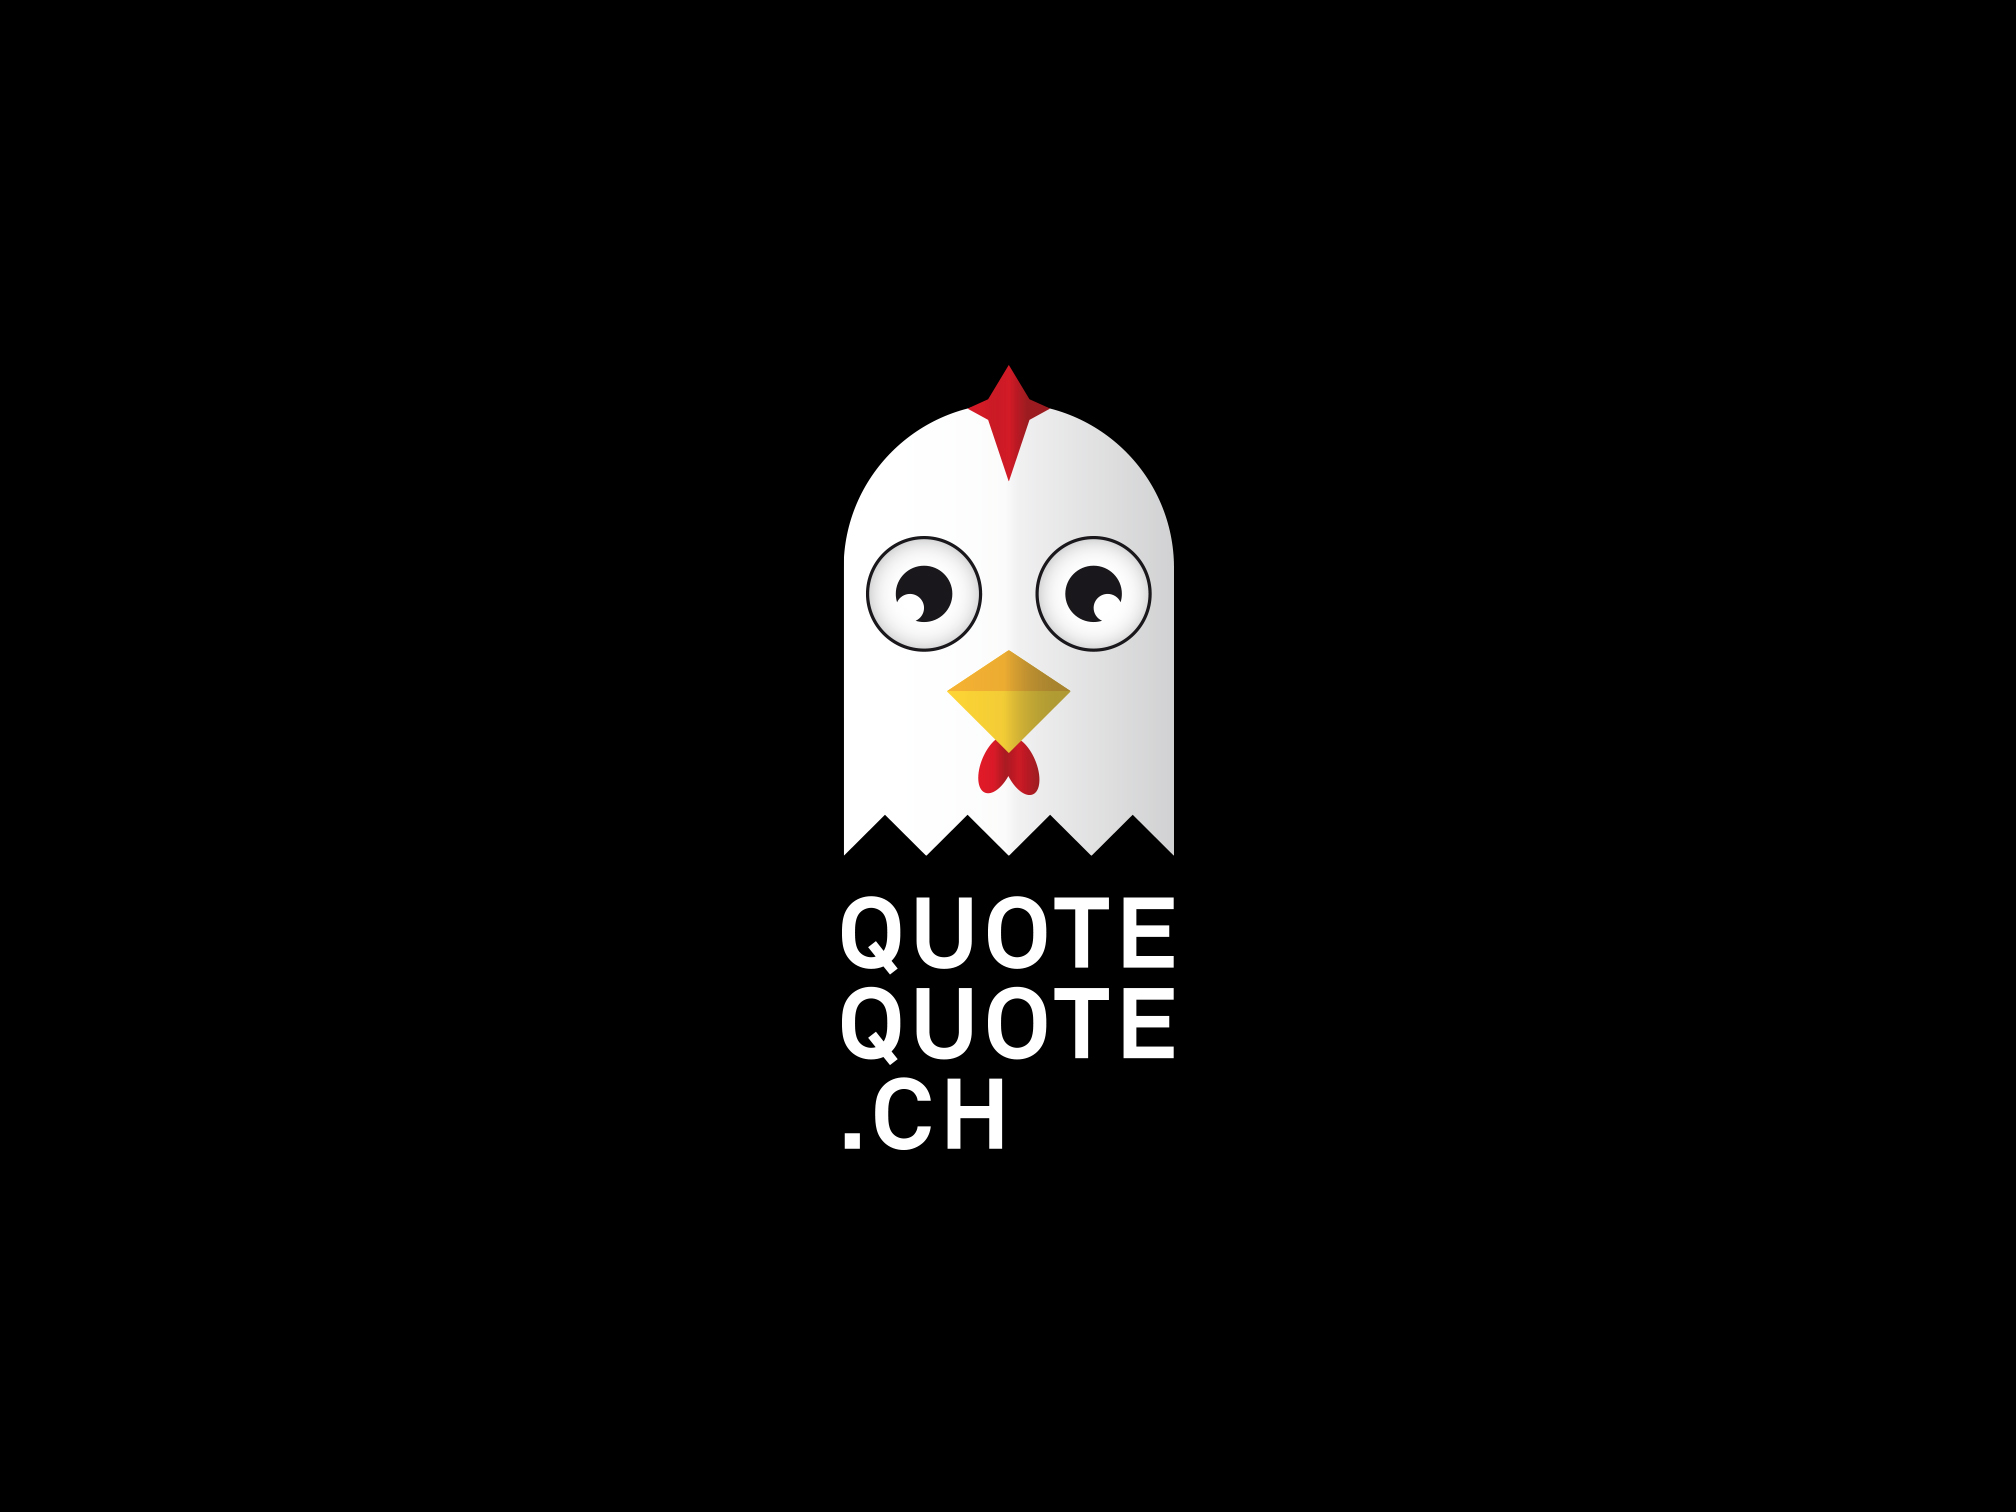 QuoteQuote.ch